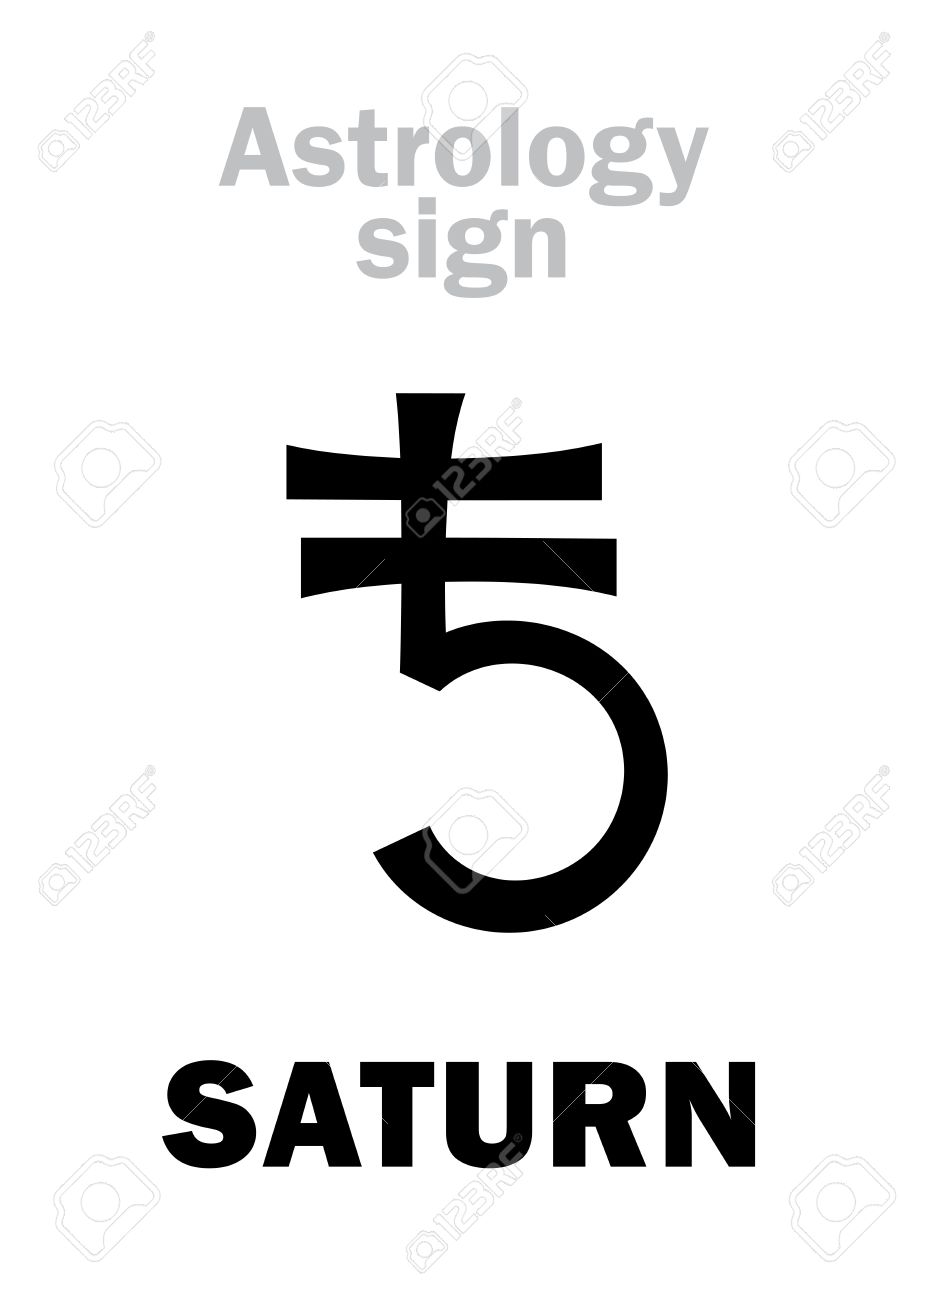 Astrology alphabet saturn classic major planet hieroglyphics astrology alphabet saturn classic major planet hieroglyphics character sign ancient symbol buycottarizona Image collections